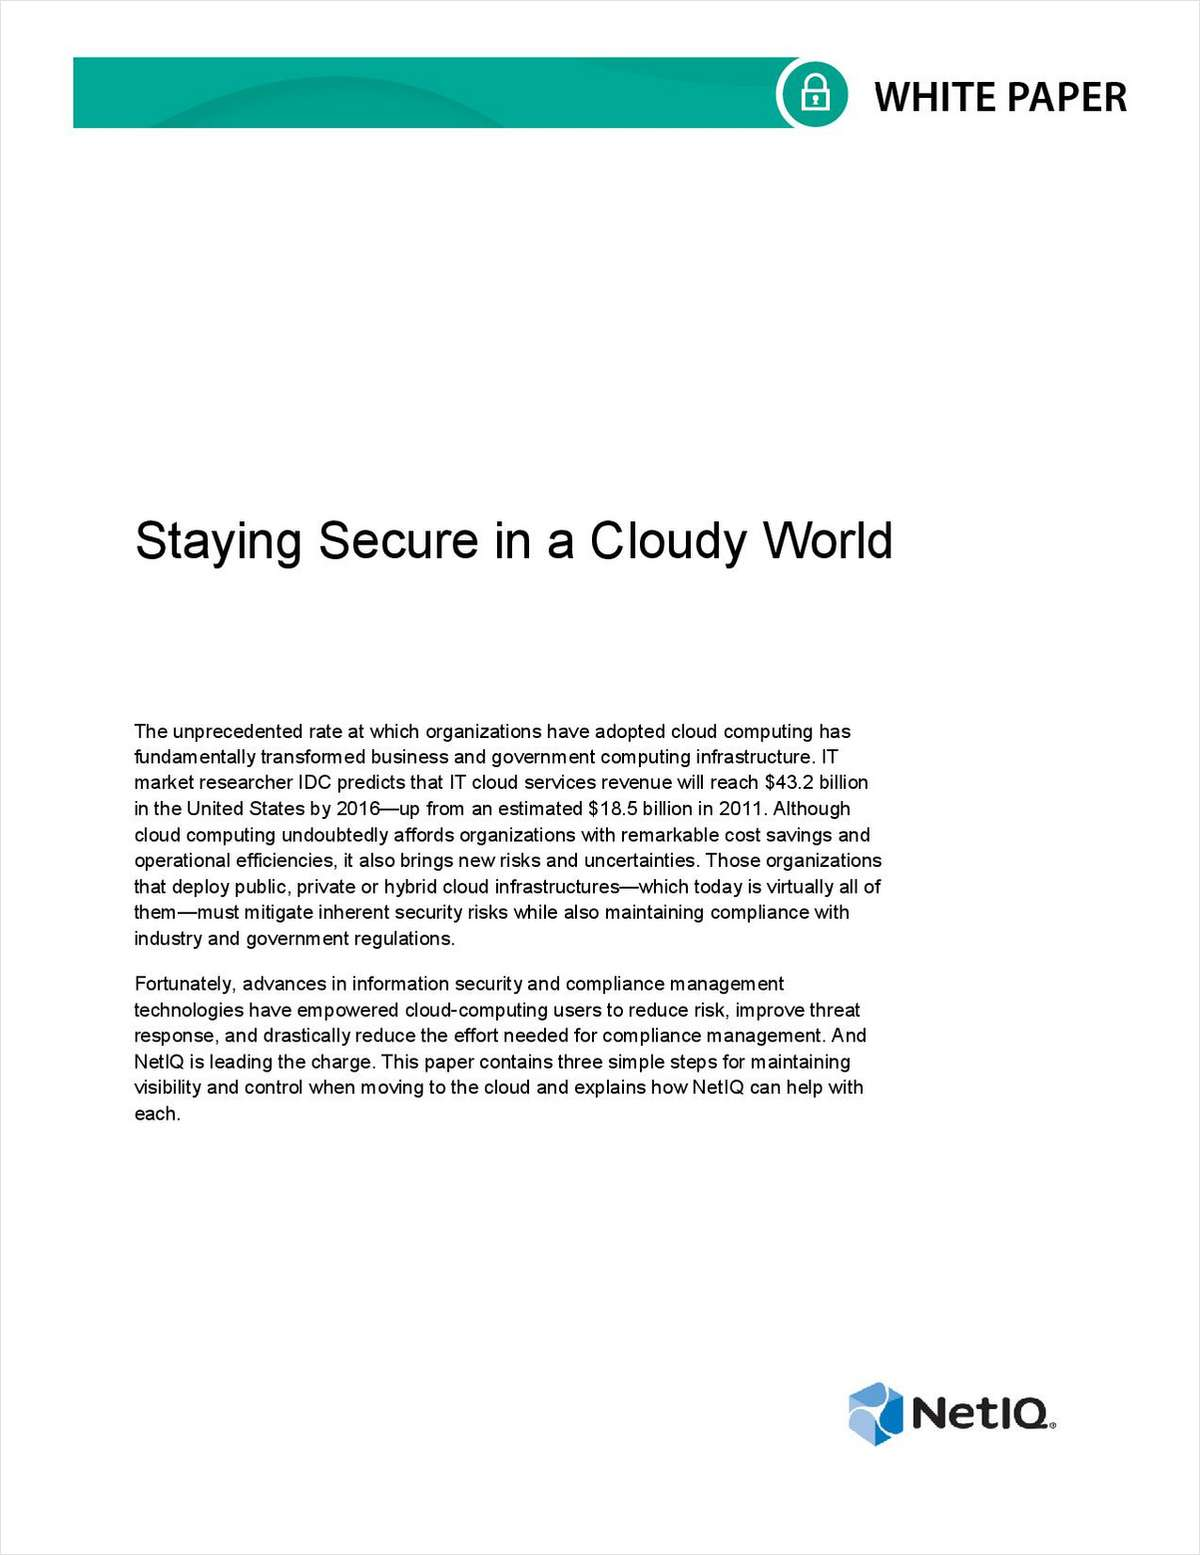 Staying Secure in a Cloudy World